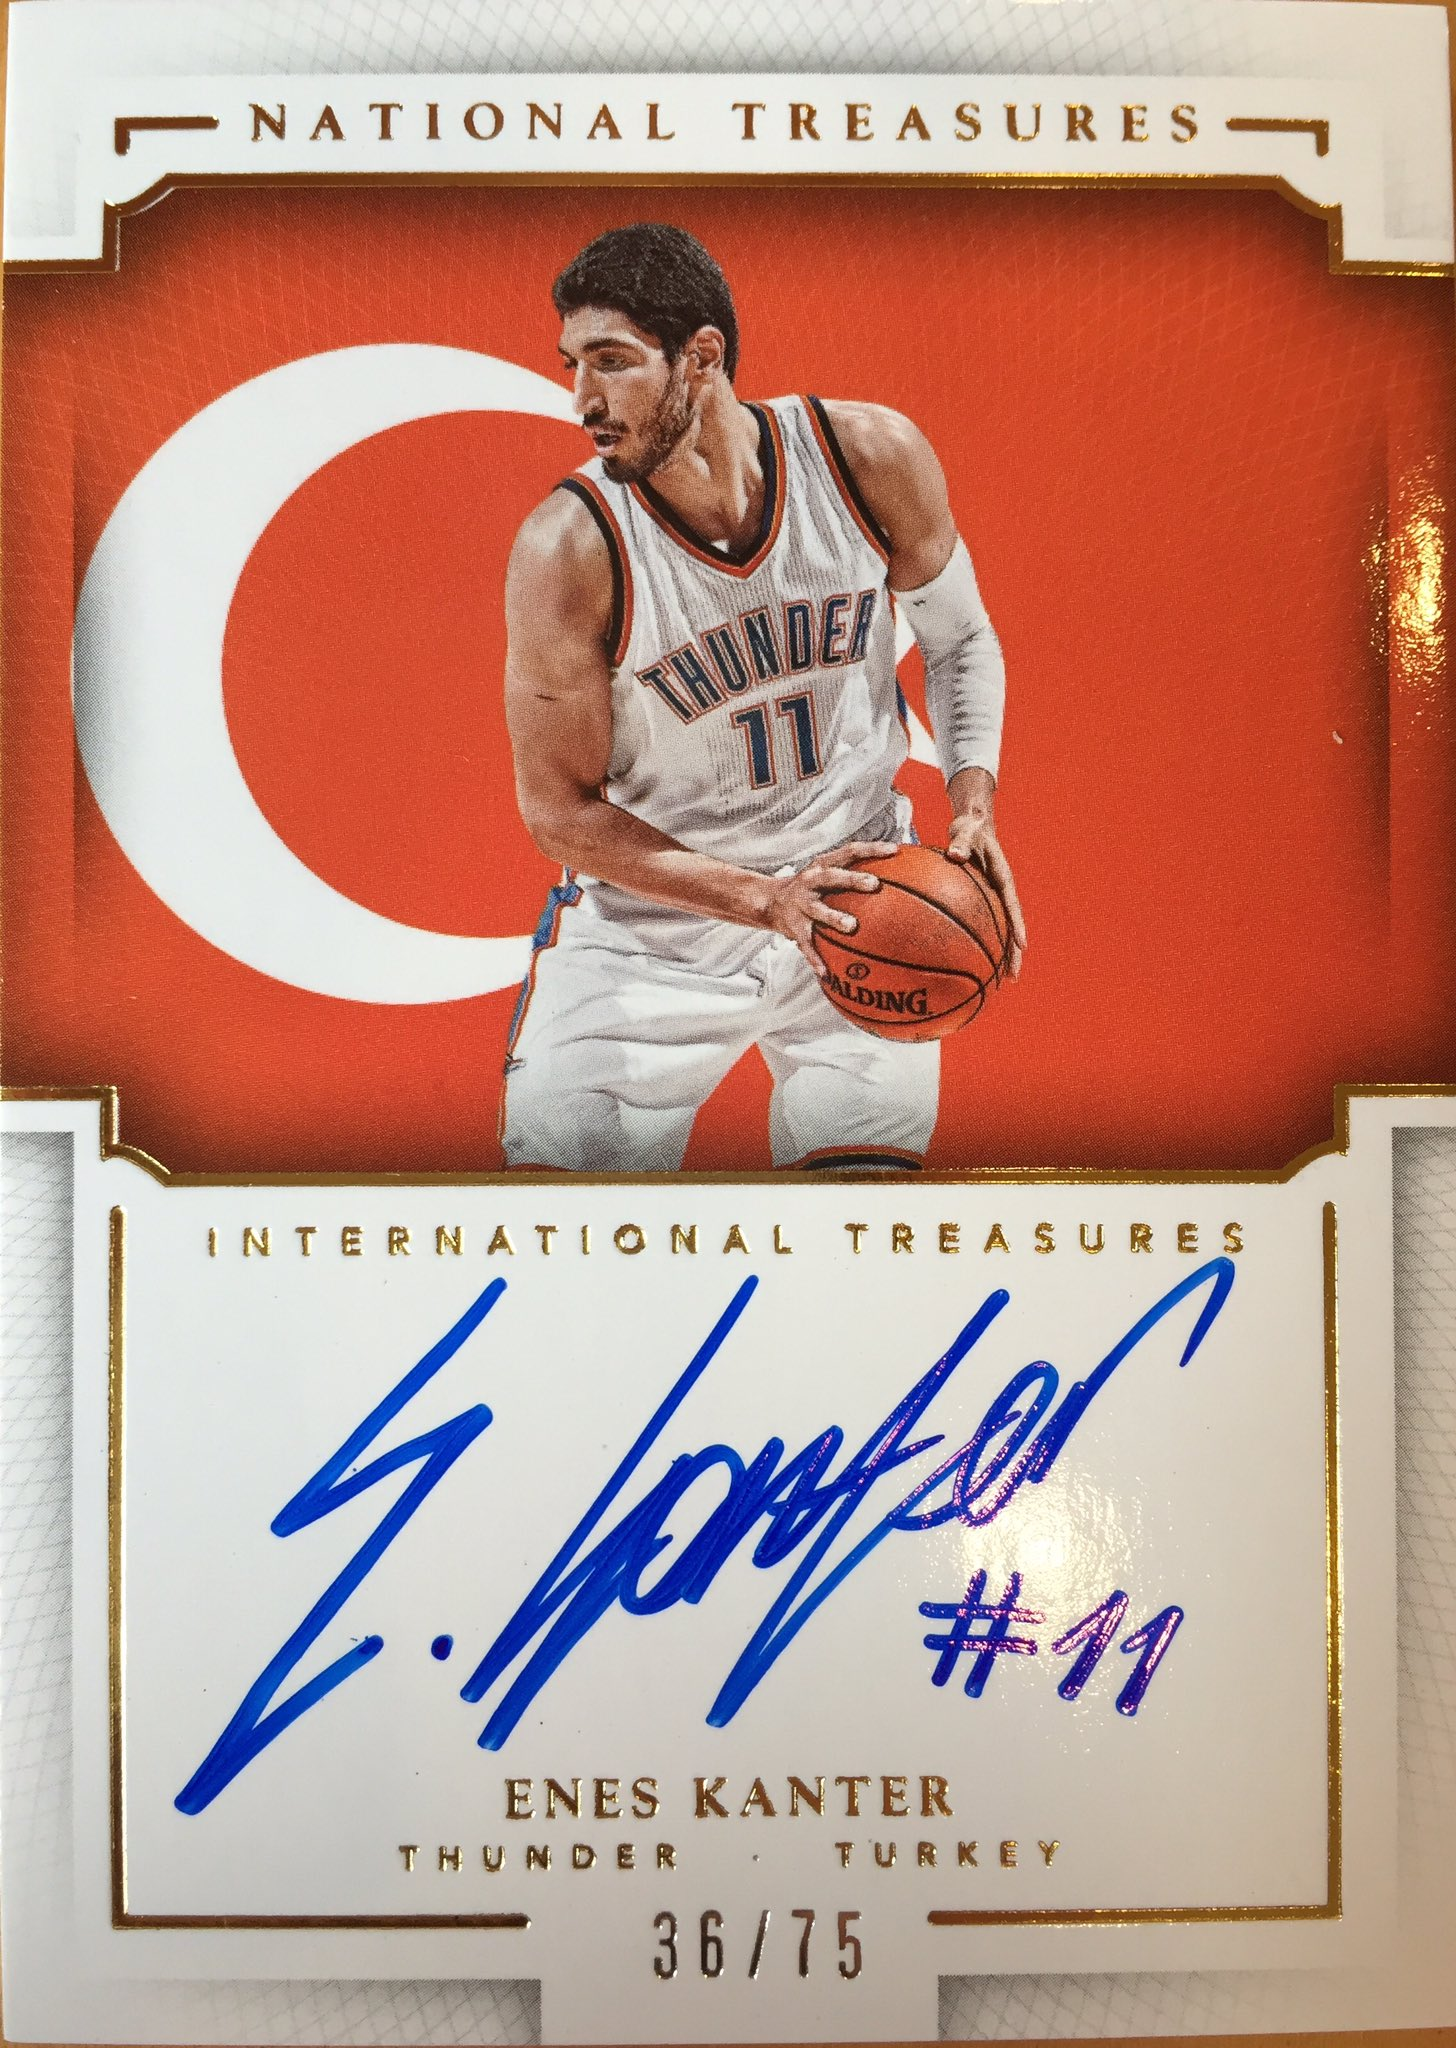 enes kanter on twitter   u0026quot thanks to  paniniamerica for some